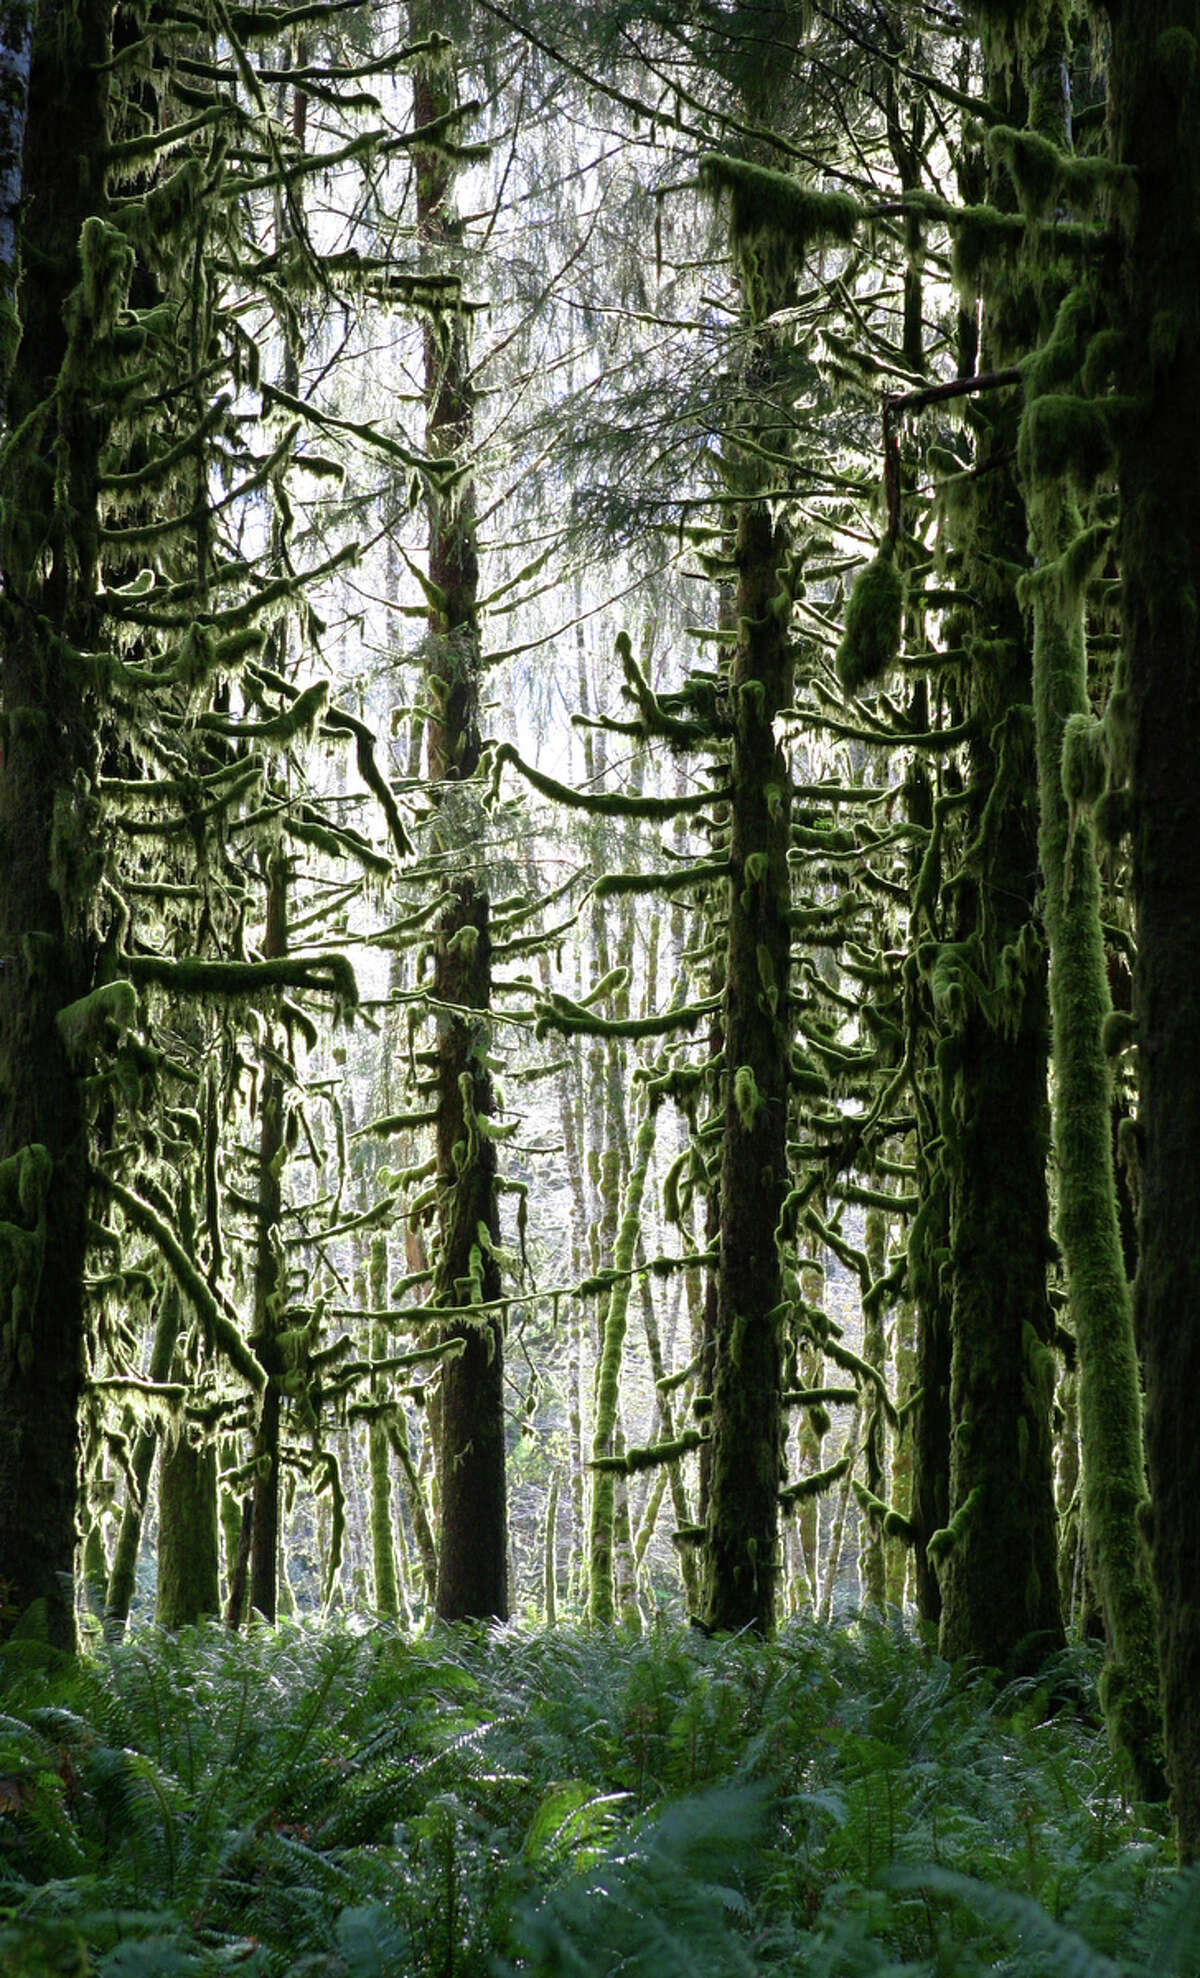 Moss grows on trees in a dense forest in Olympic National Park.